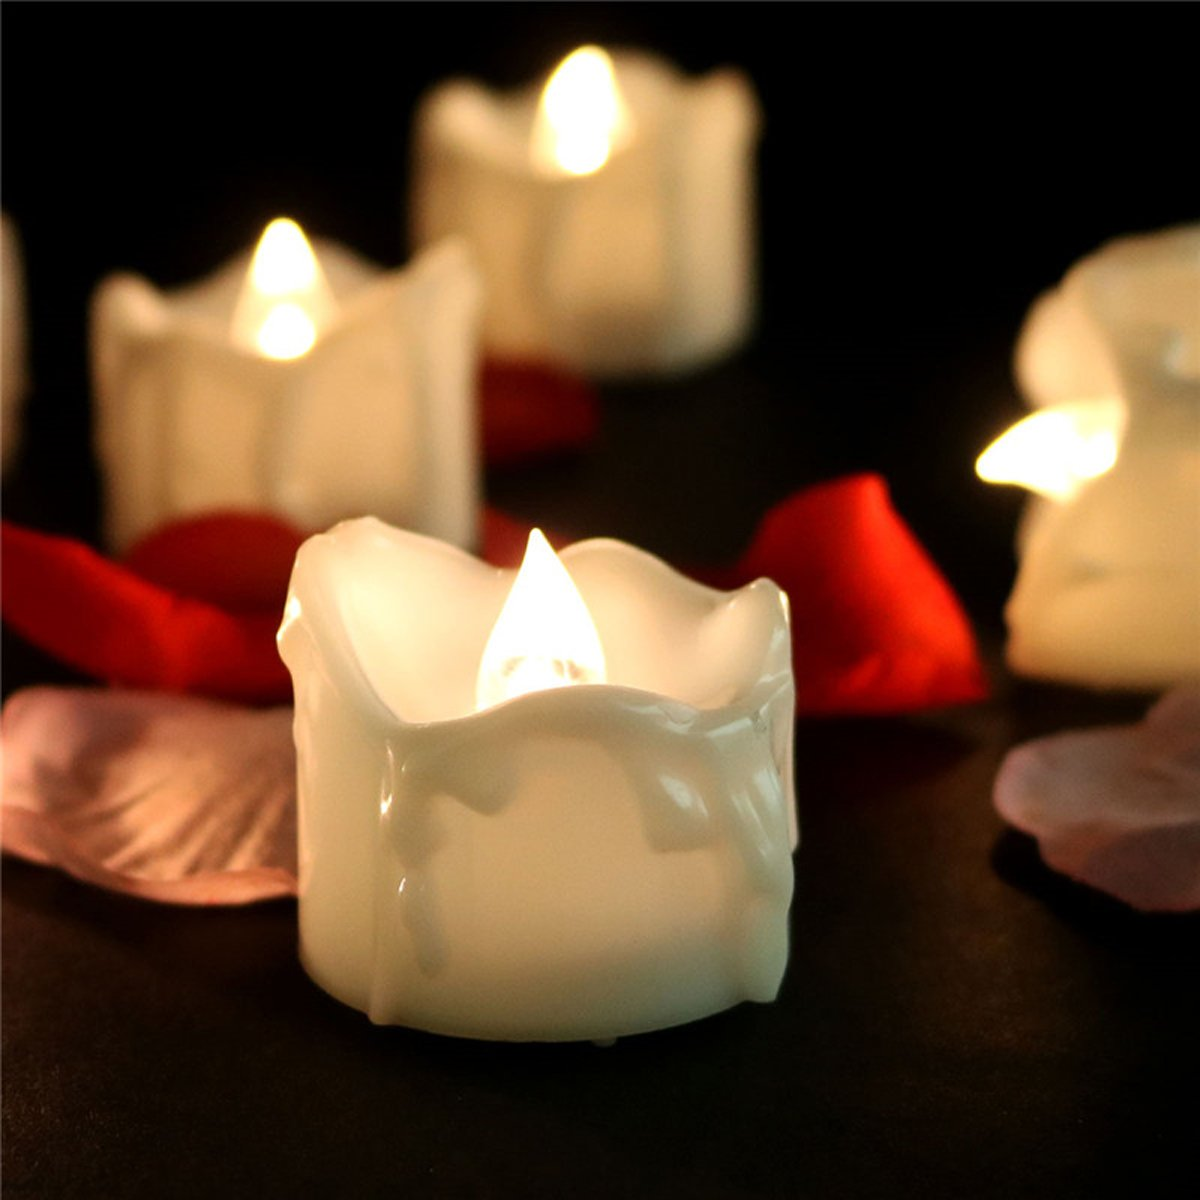 LifeGenius 96 PCS Wax Dripped Unscented Flameless Candles Bulk Flickering Warm White Votive Realistic Small Tea lights